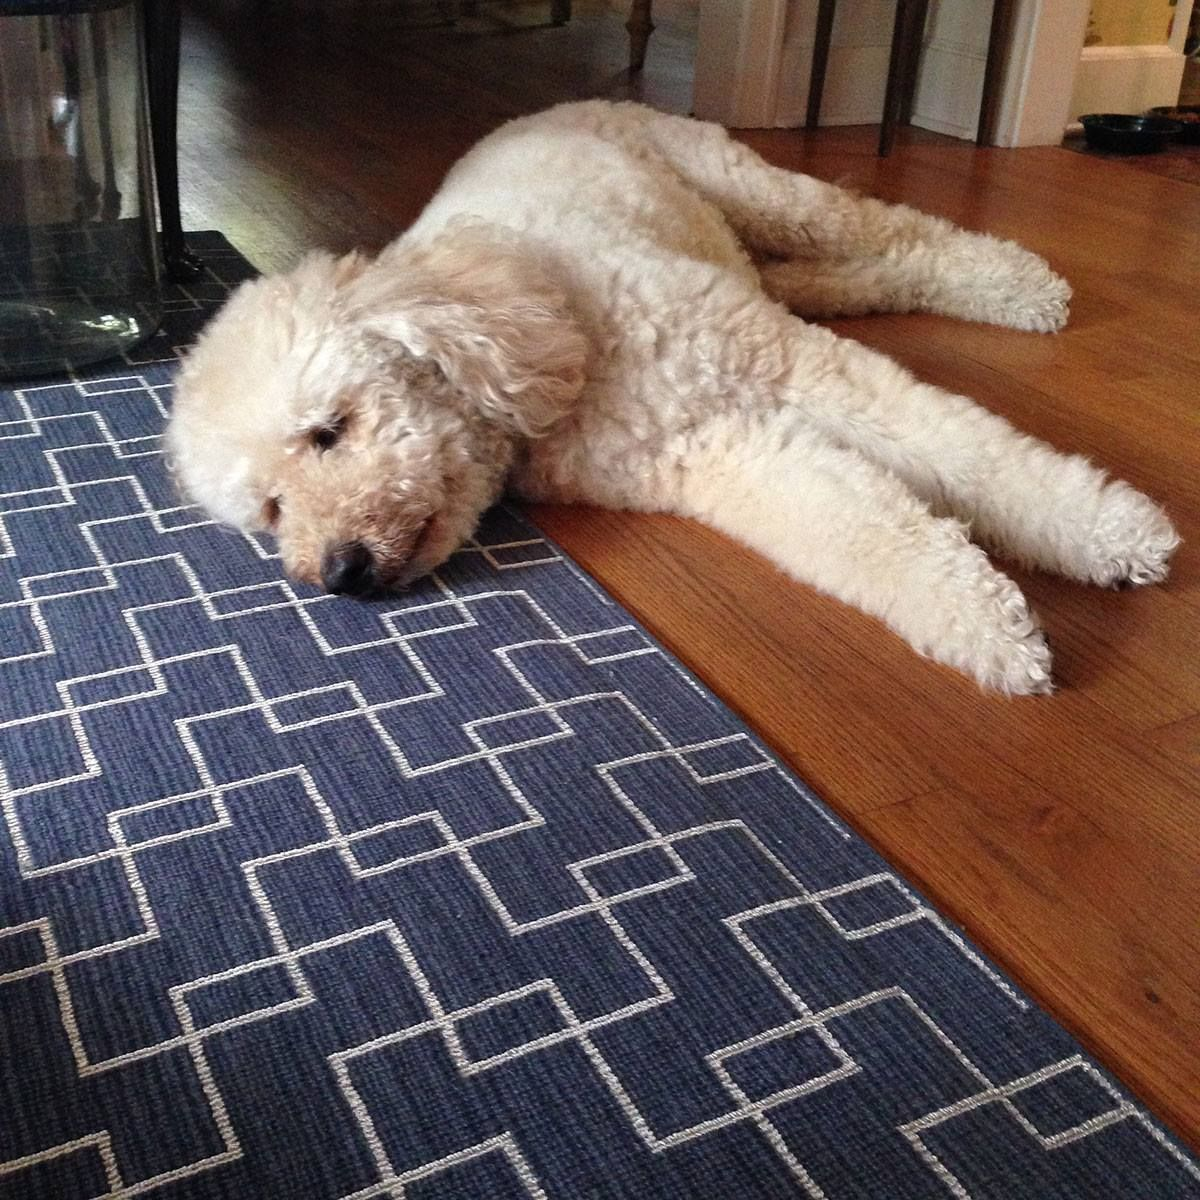 It Looks Like This Cute And Cuddly Dog Approves Of Our Castillo Rug Which Is A Navy Geometric Pattern And Perfect For Cute Little Animals Cutest Dog Ever Dogs